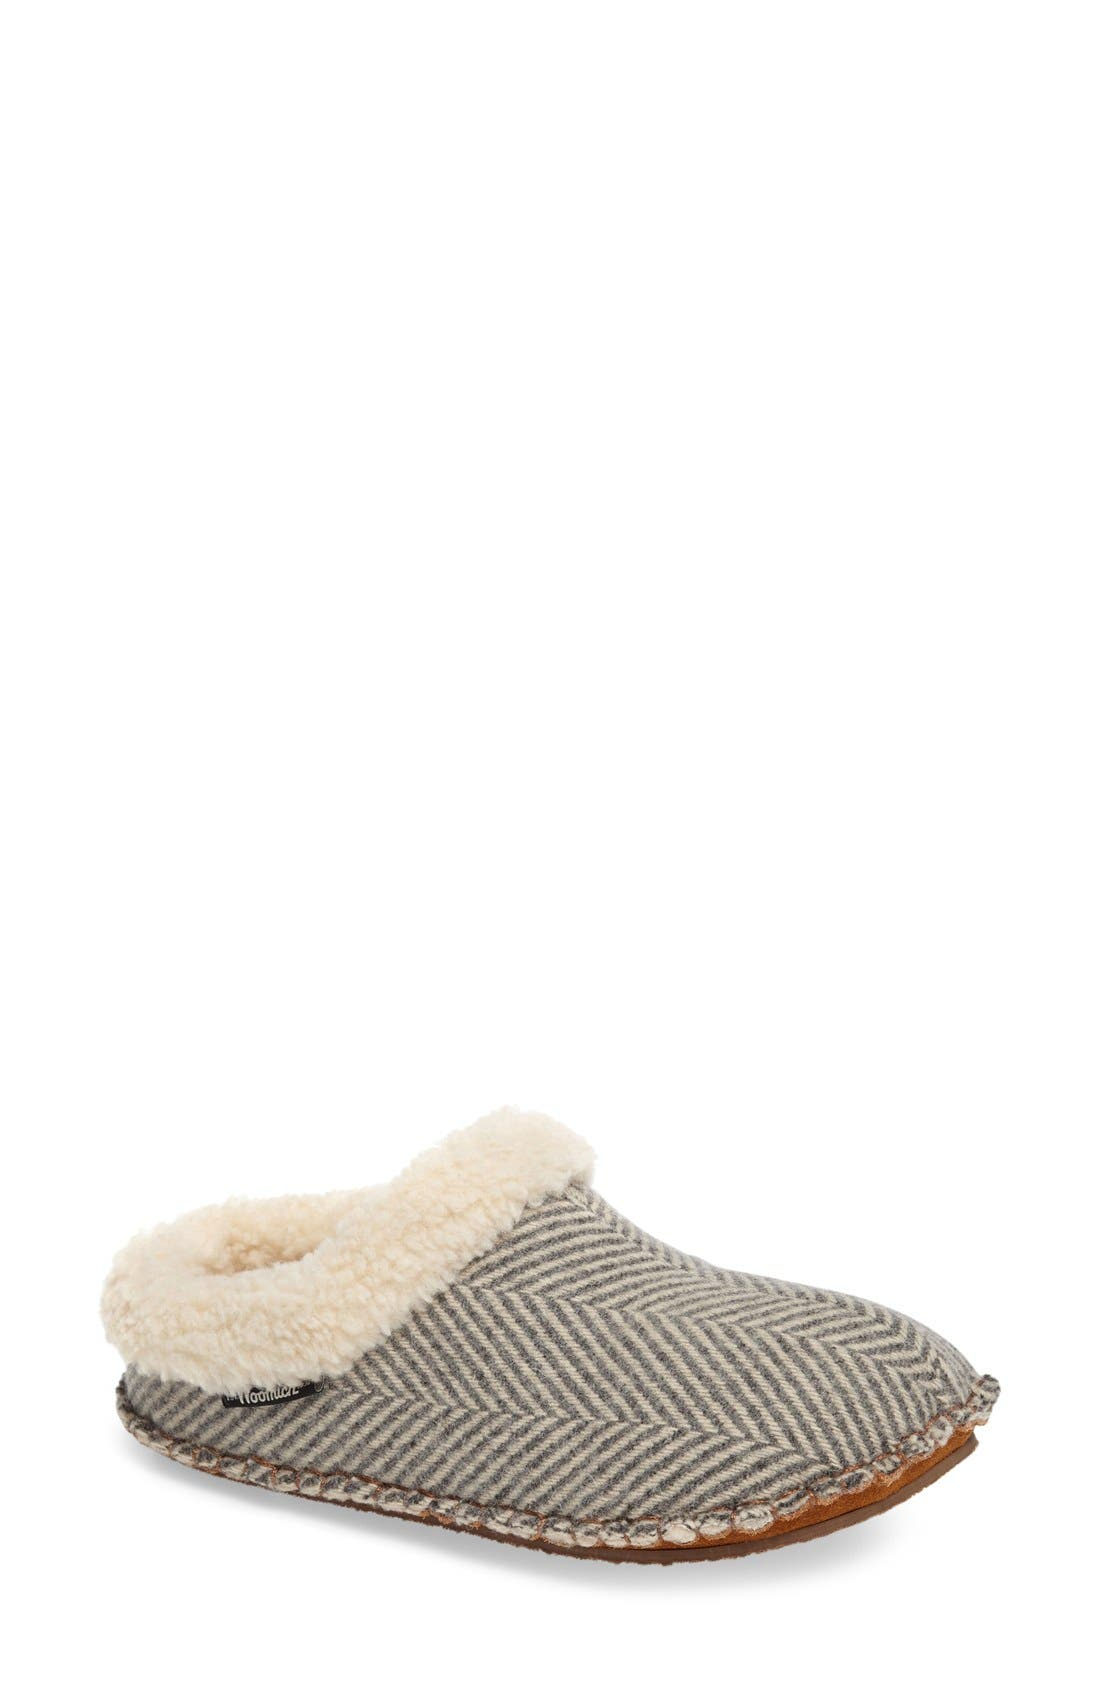 Alternate Image 1 Selected - Woolrich Lodge Slipper (Women)